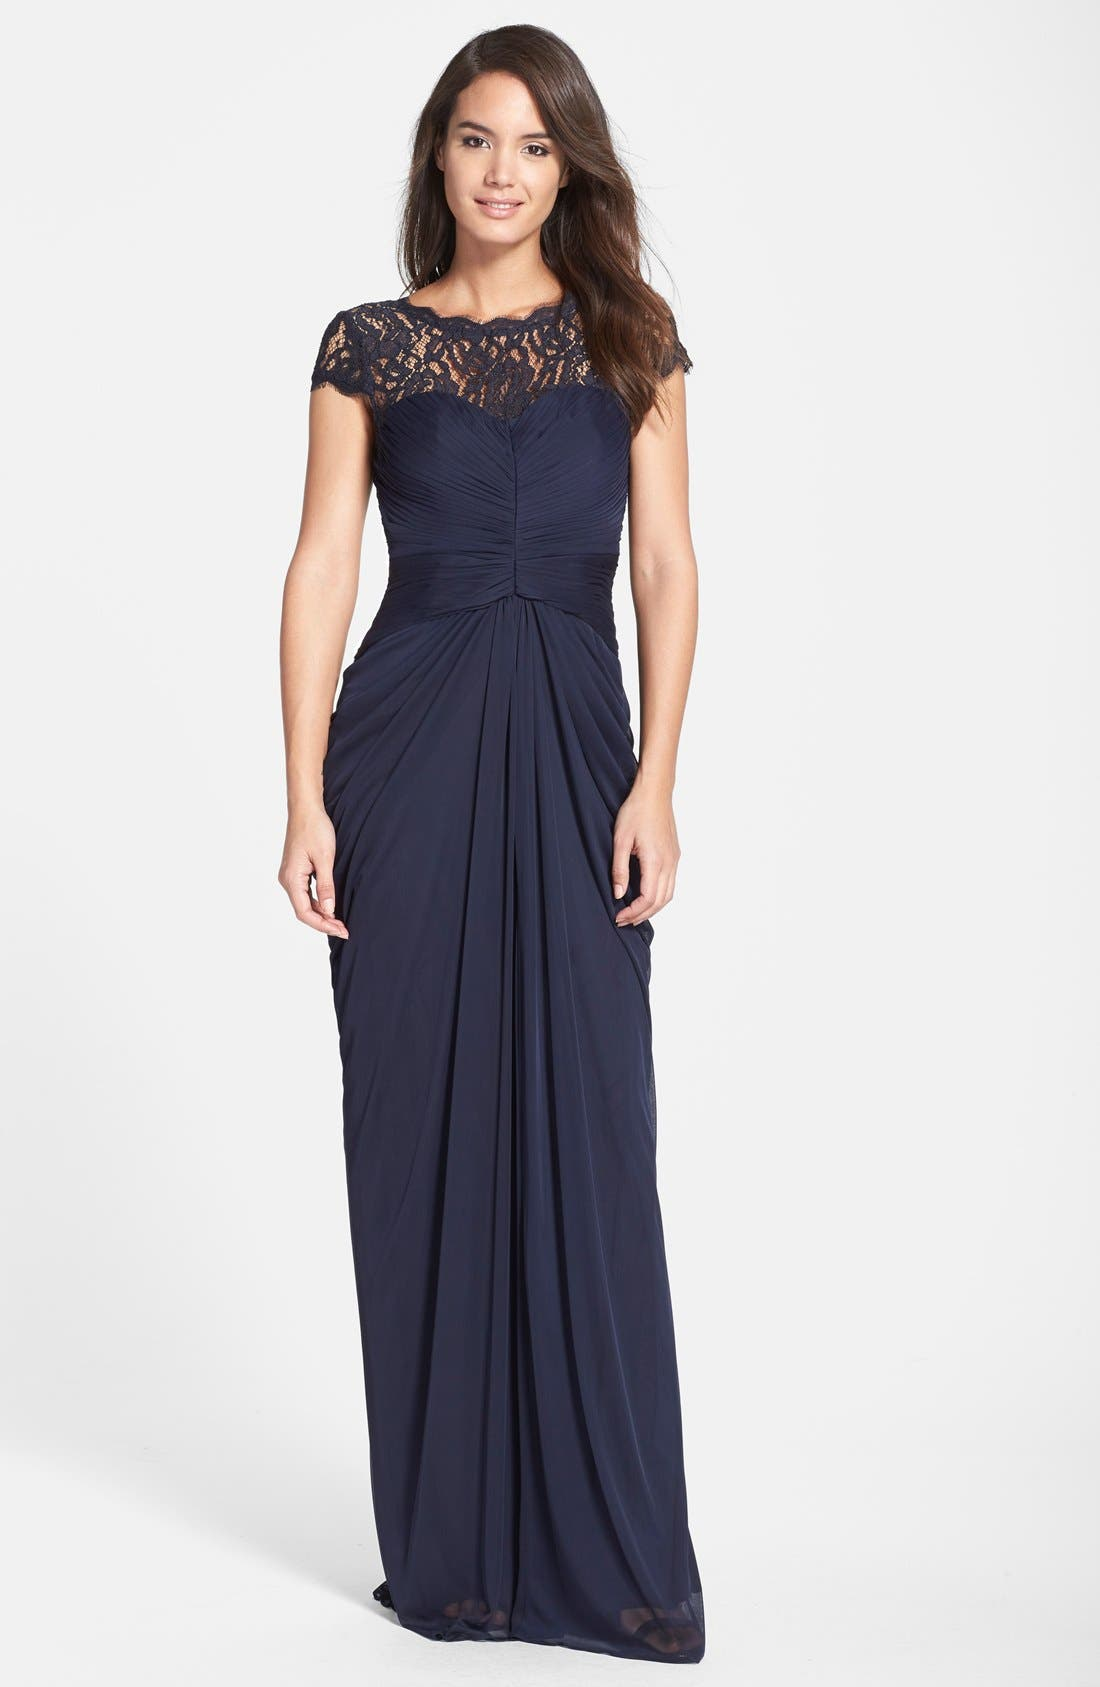 Long Bridesmaid Dresses | Nordstrom